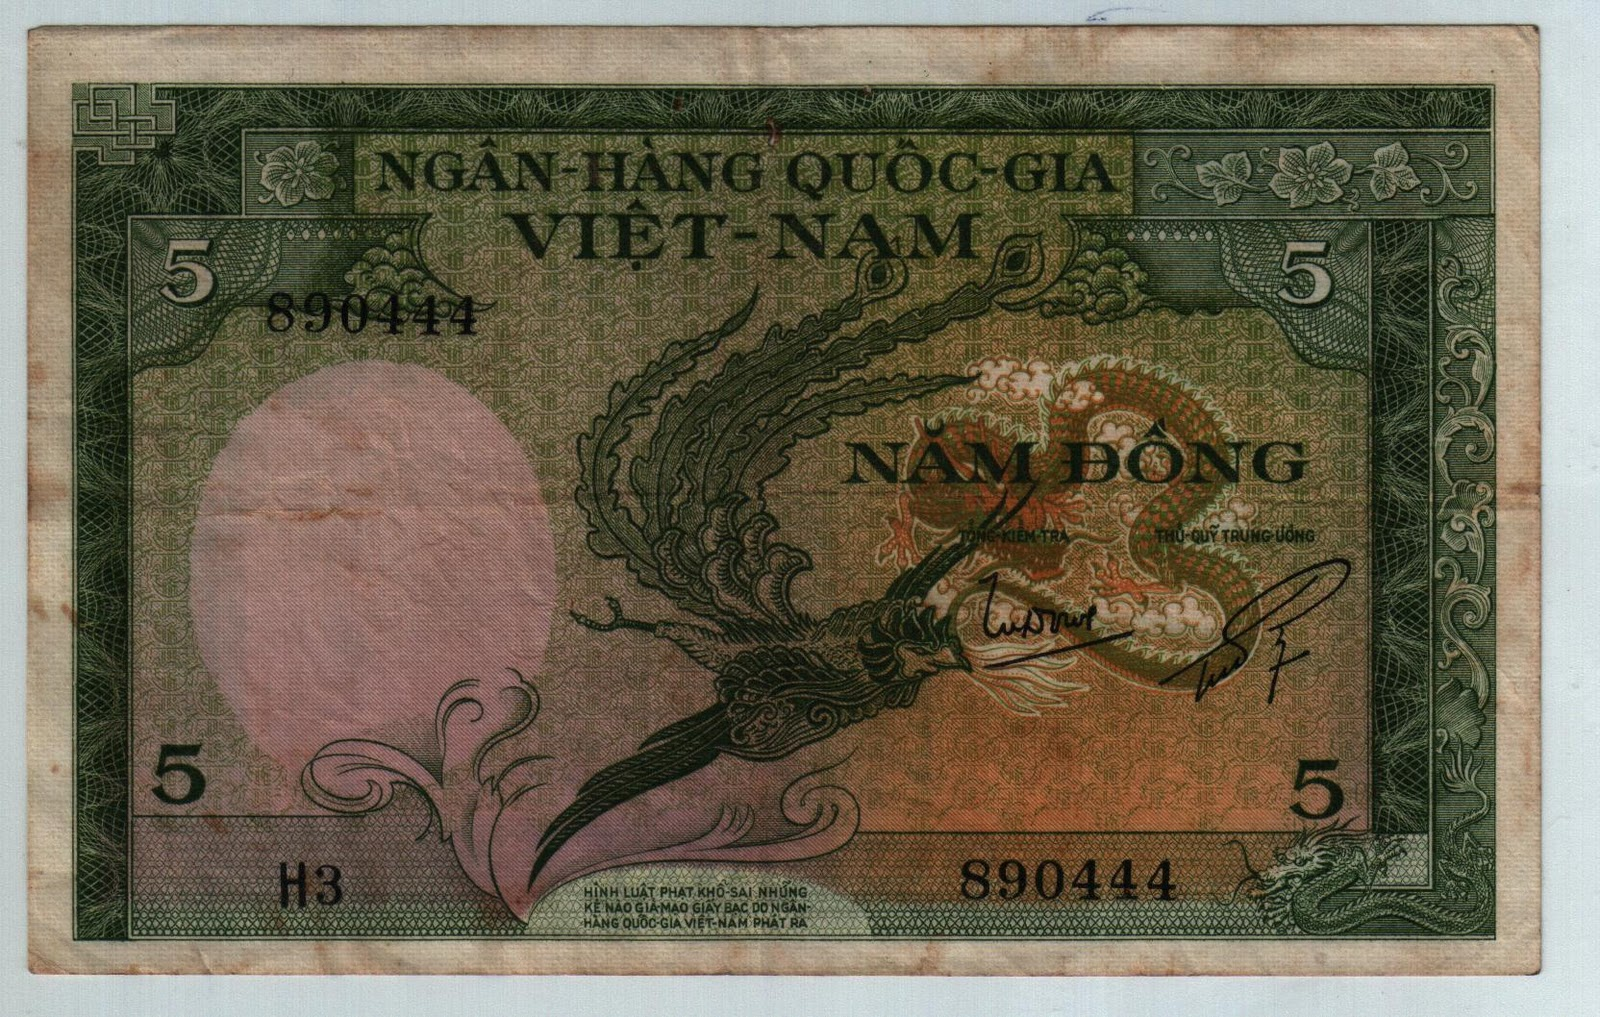 Bank for Investment and Development of Vietnam - Wikipedia